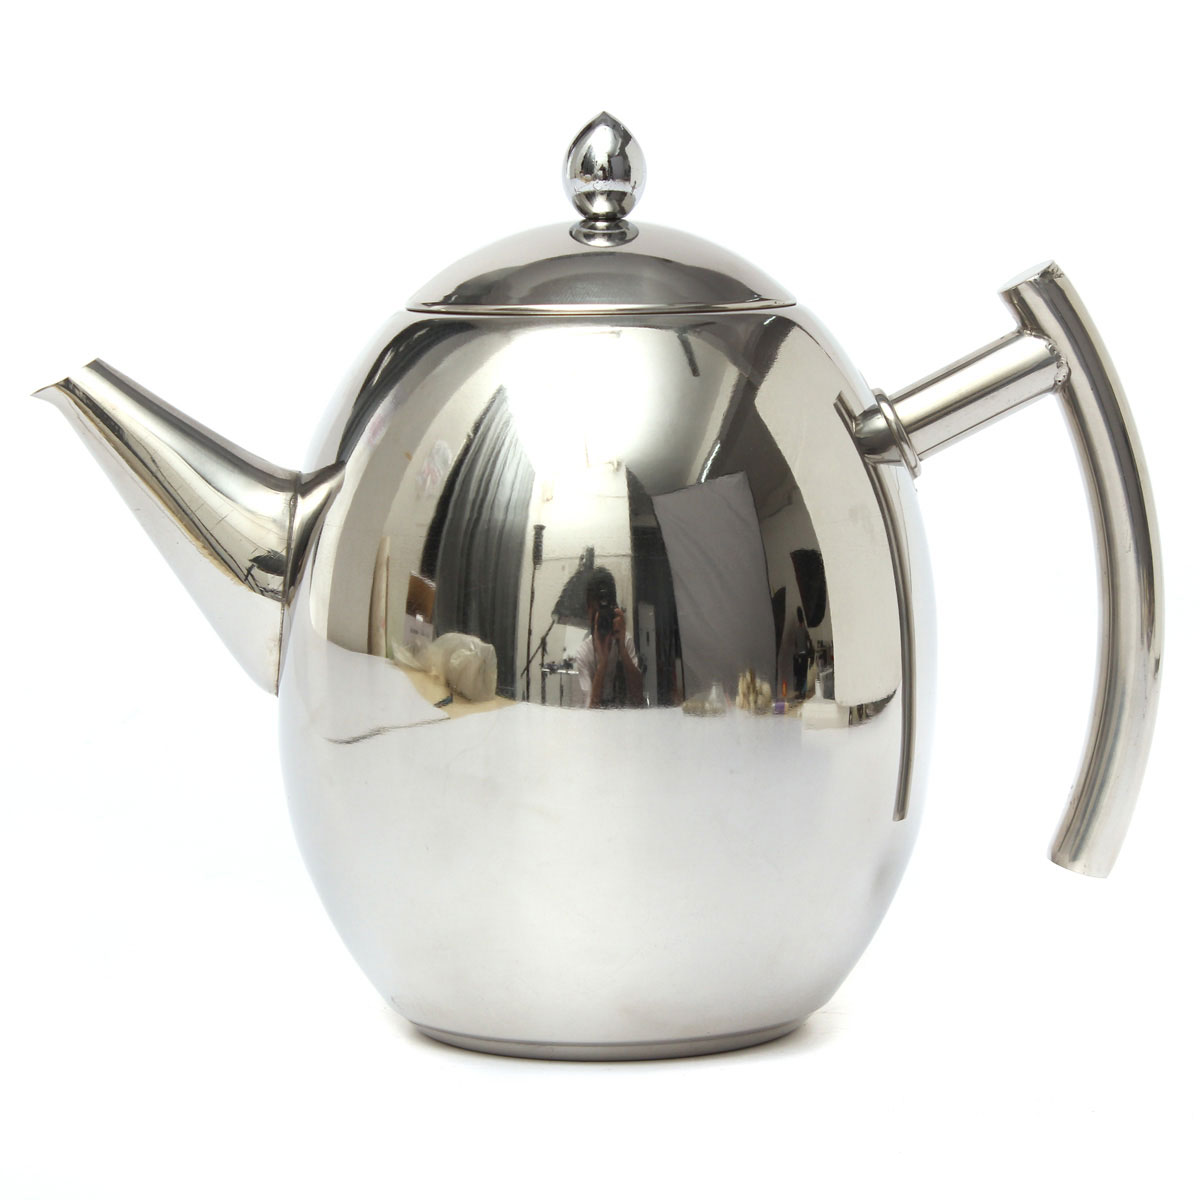 1500ml stainless steel teapot tea pot coffee with tea leaf filter infuser silver lazada malaysia - Tea pots with infuser ...